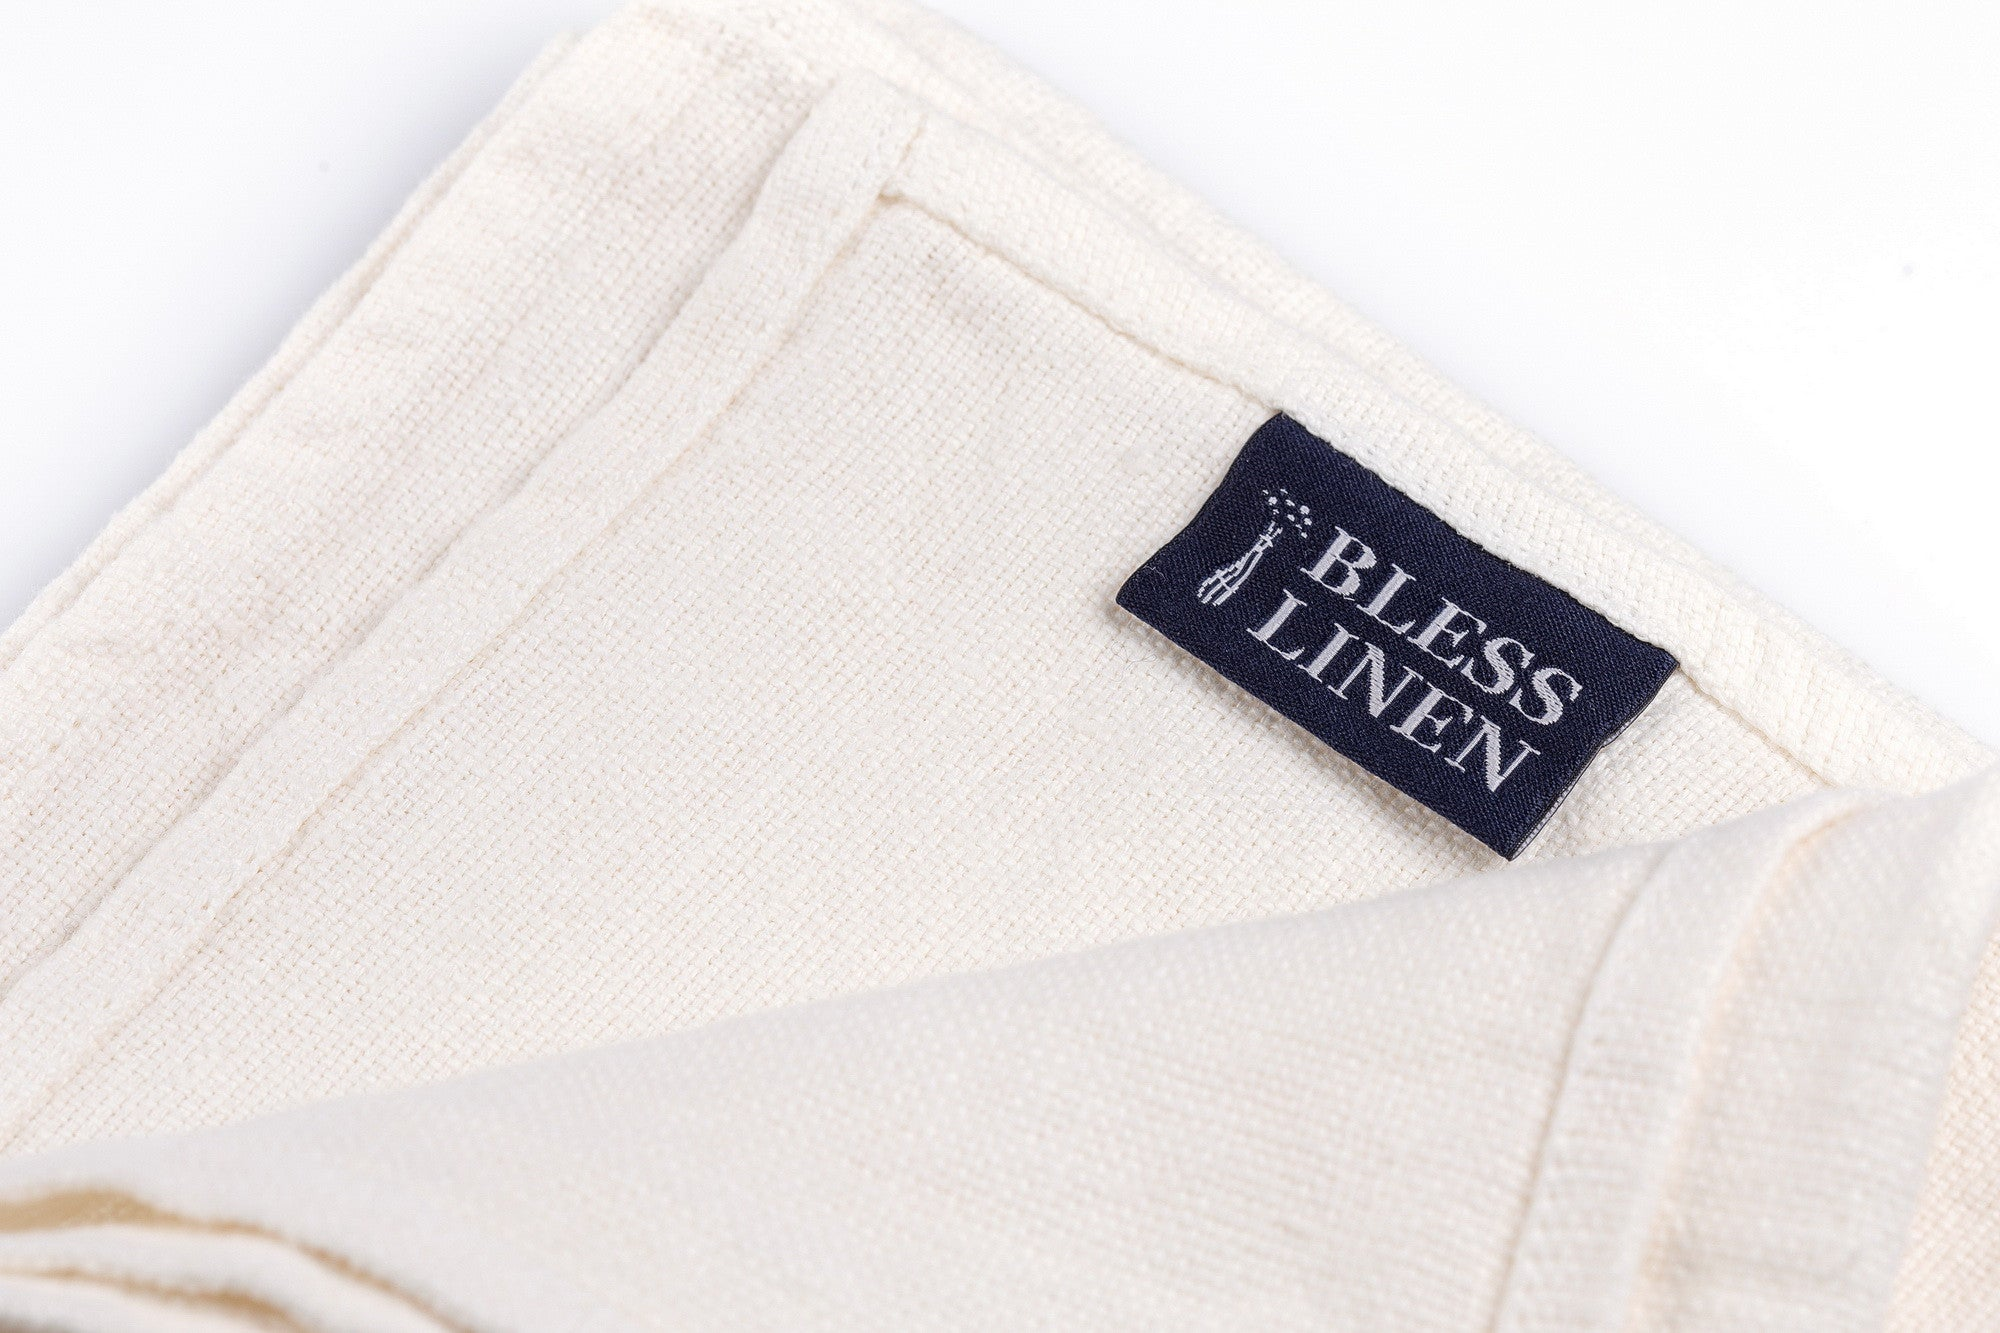 BLESS LINEN Stonewash Pure Linen Flax Bath Towel, White - BLESS LINEN pure linen towels and blankets - 3